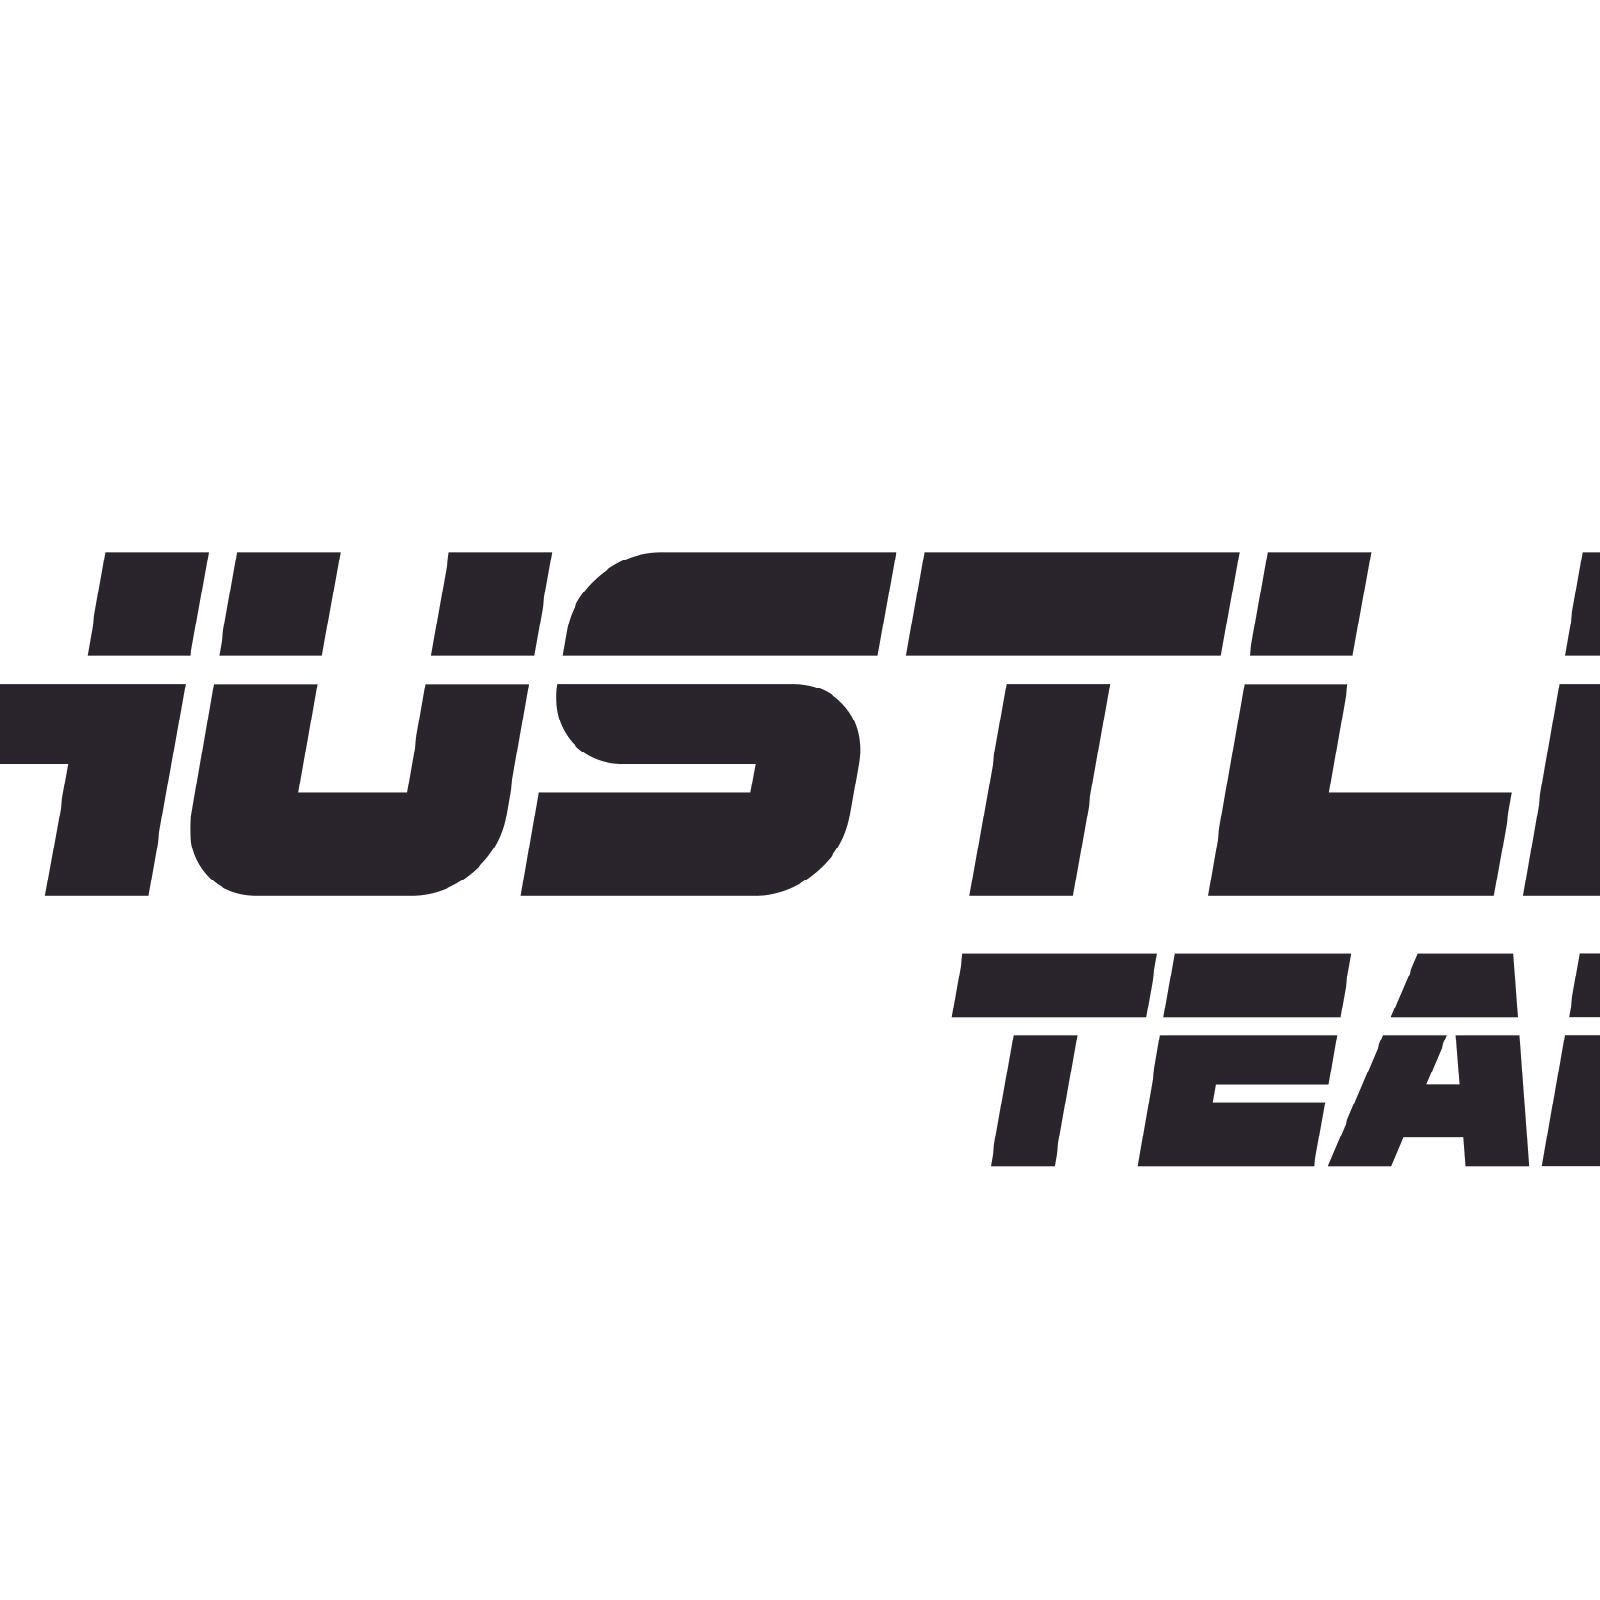 Put Em In The Sky By Cartel Mgm From The Hustle Team